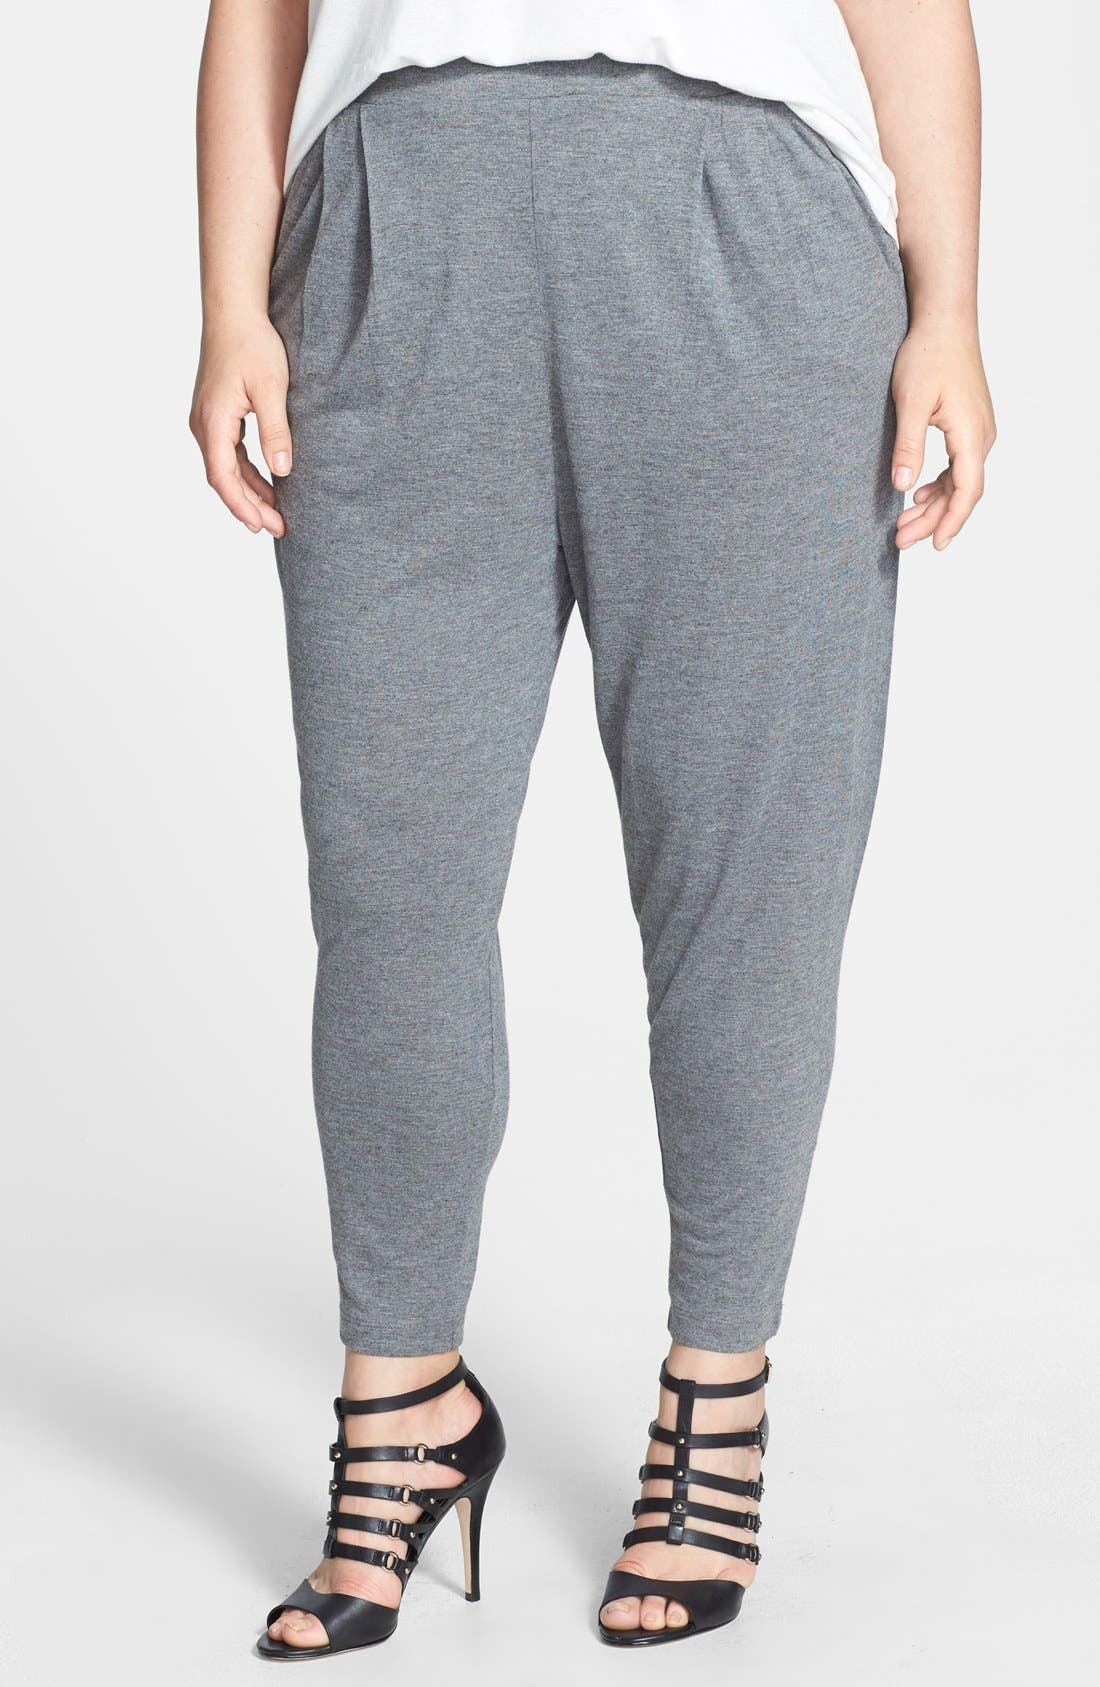 Alternate Image 1 Selected - Jessica Simpson 'Hadley' Slouchy Pants (Plus Size)